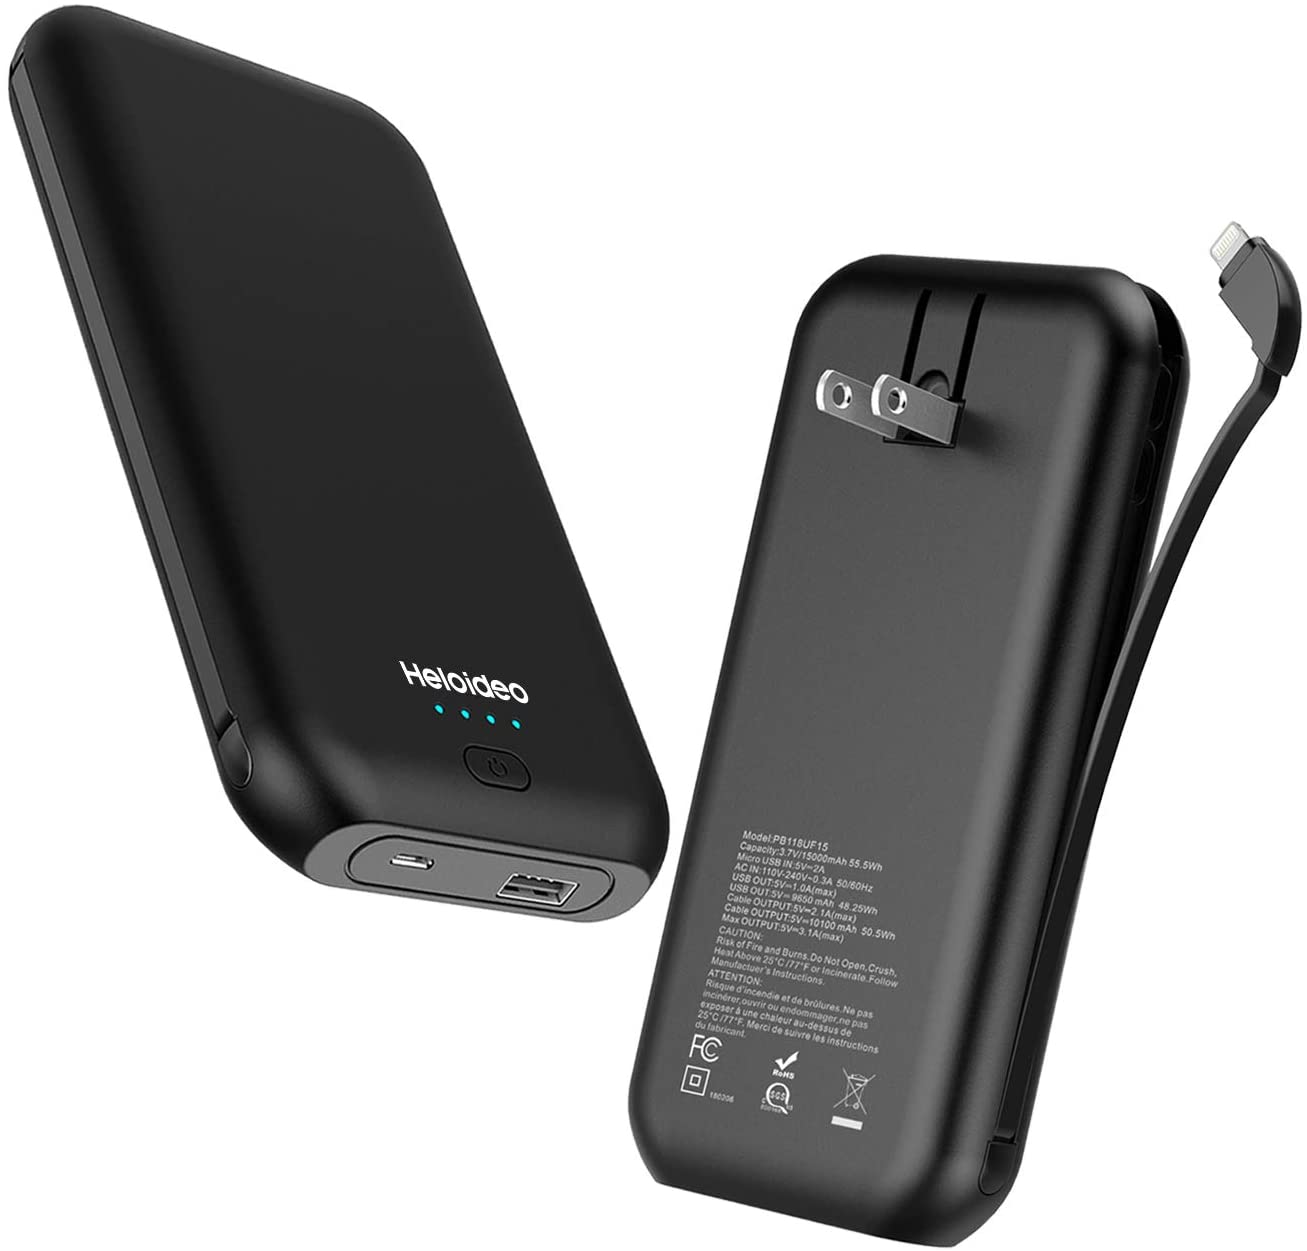 15000mAh Power Bank With AC Plug From Heloideo